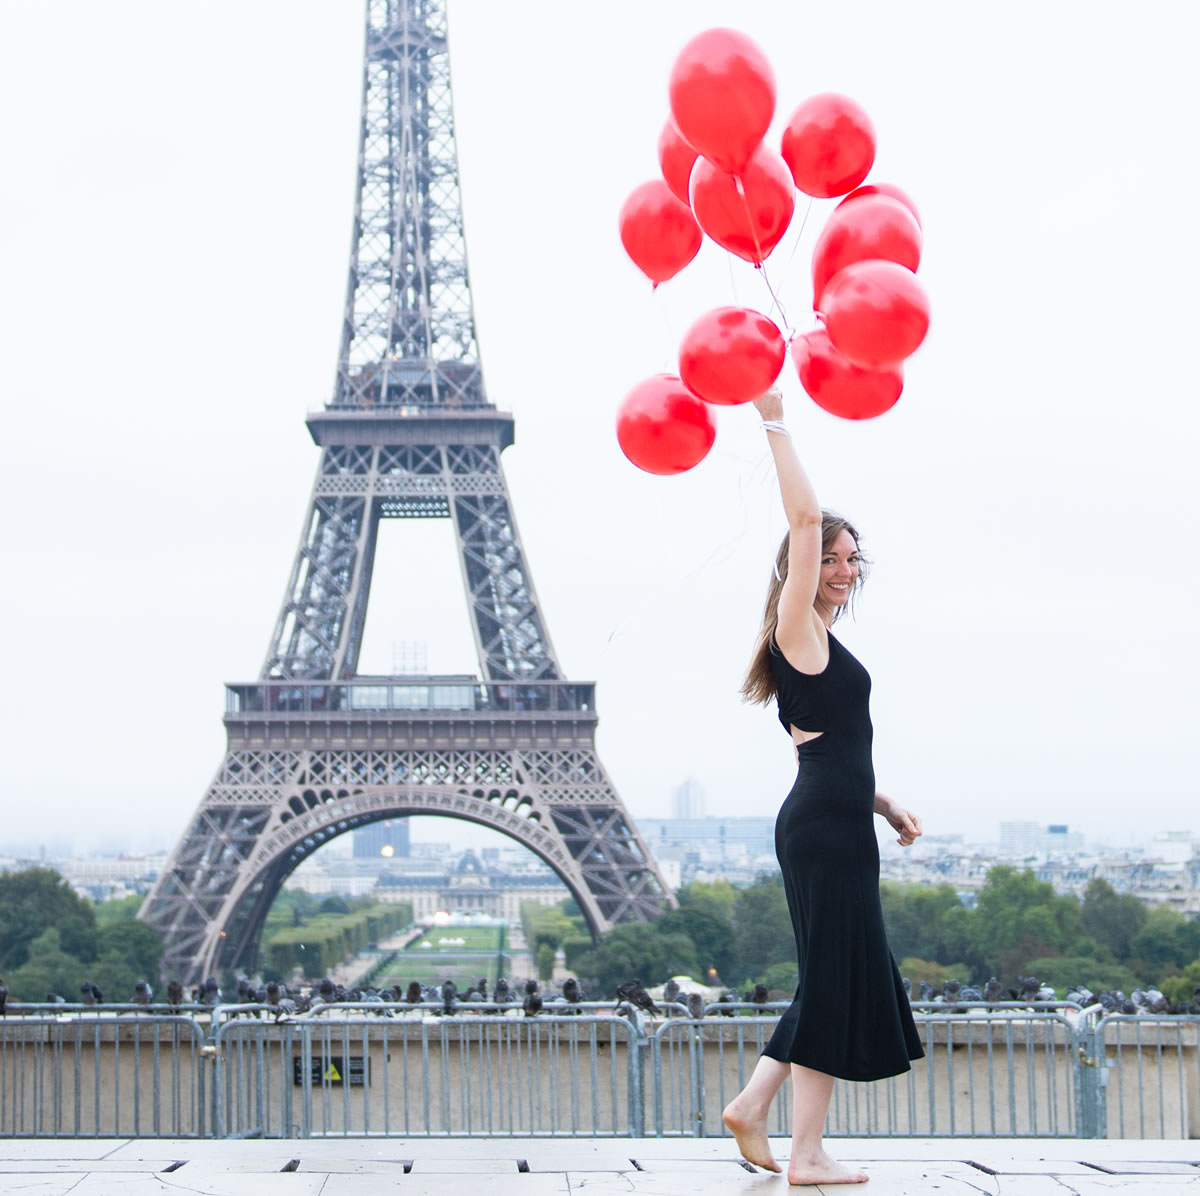 Copywriter Bonnie Caton holding red balloons while overlooking the Eiffel Tower at sunrise at the Trocadero in Paris